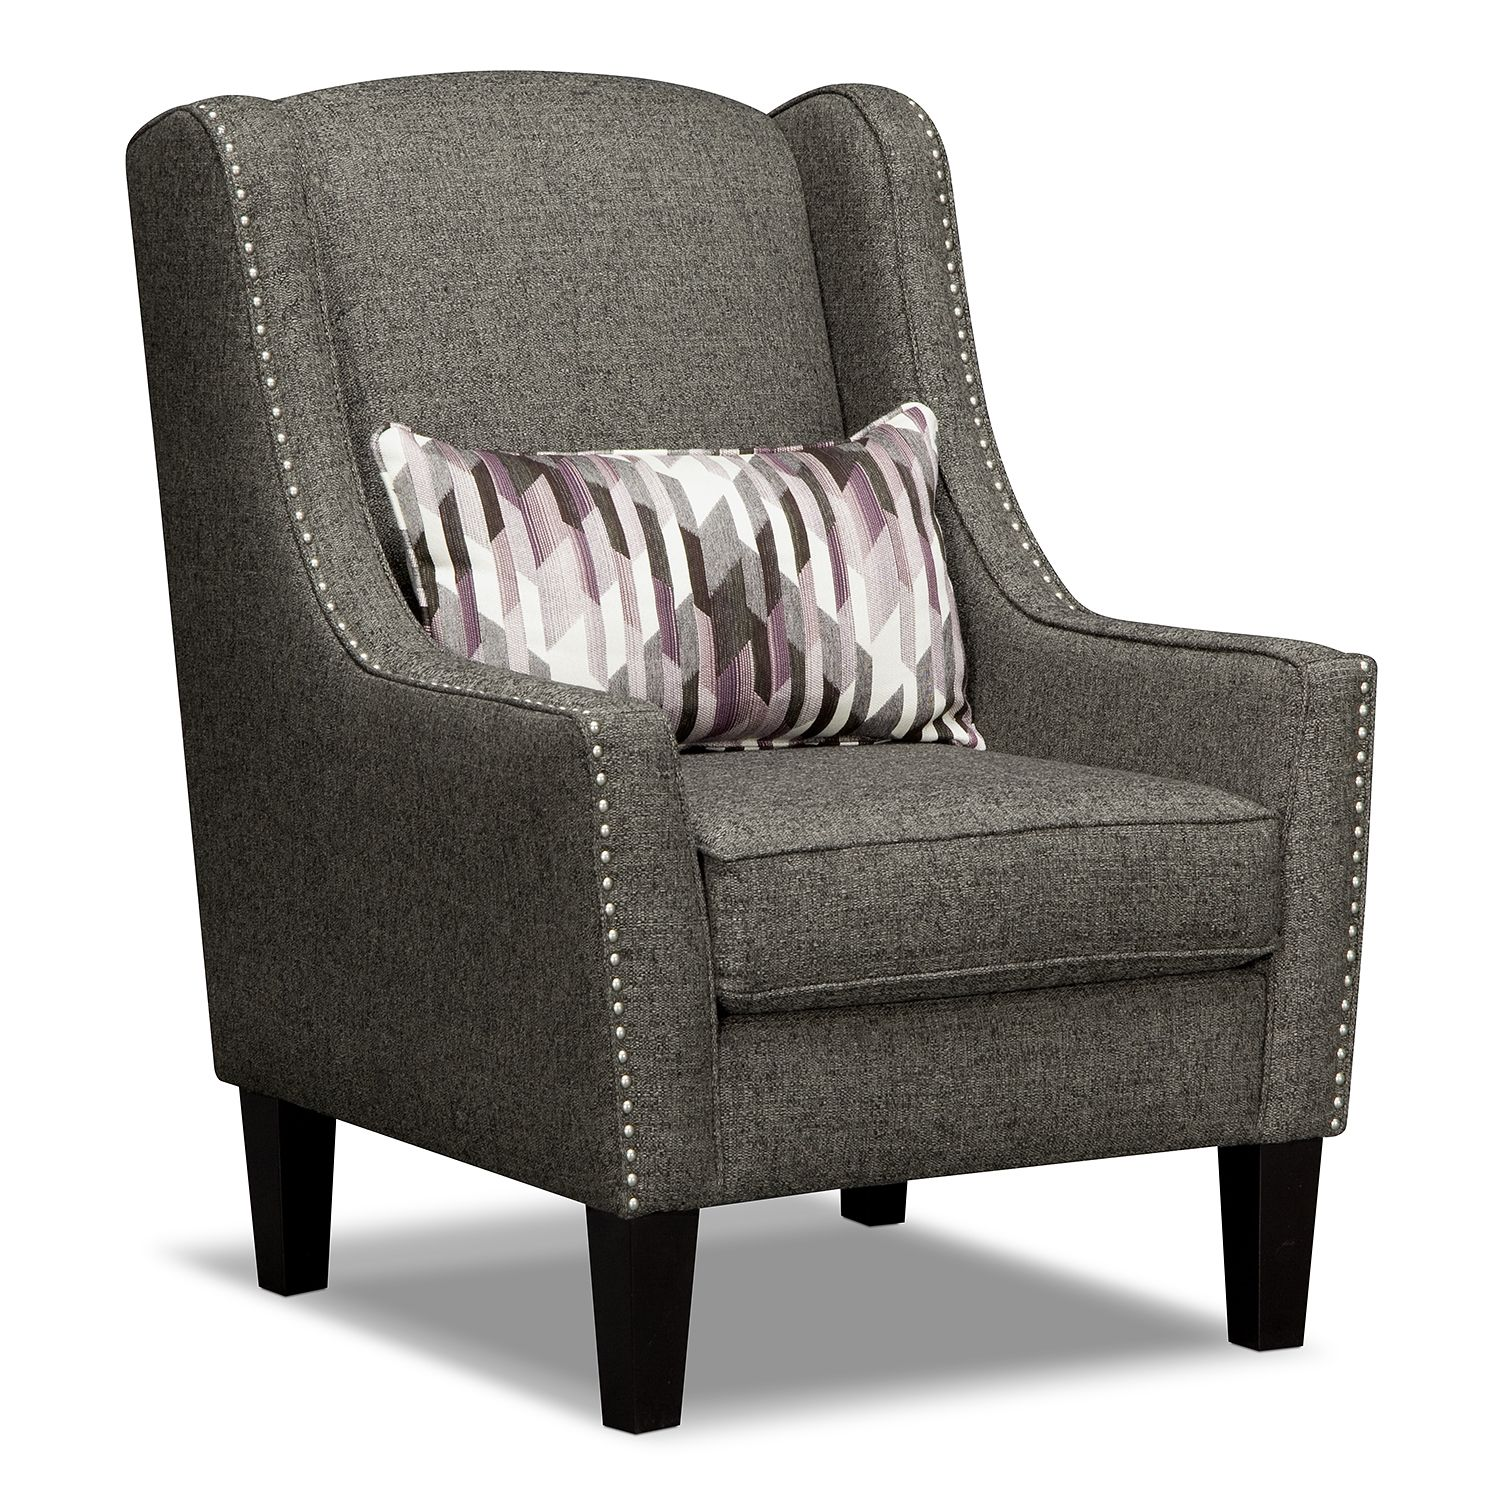 Value City Furniture Accent Chairs Chiavari Chair Rental Tampa Ritz 2 Pc Living Room W American Signature